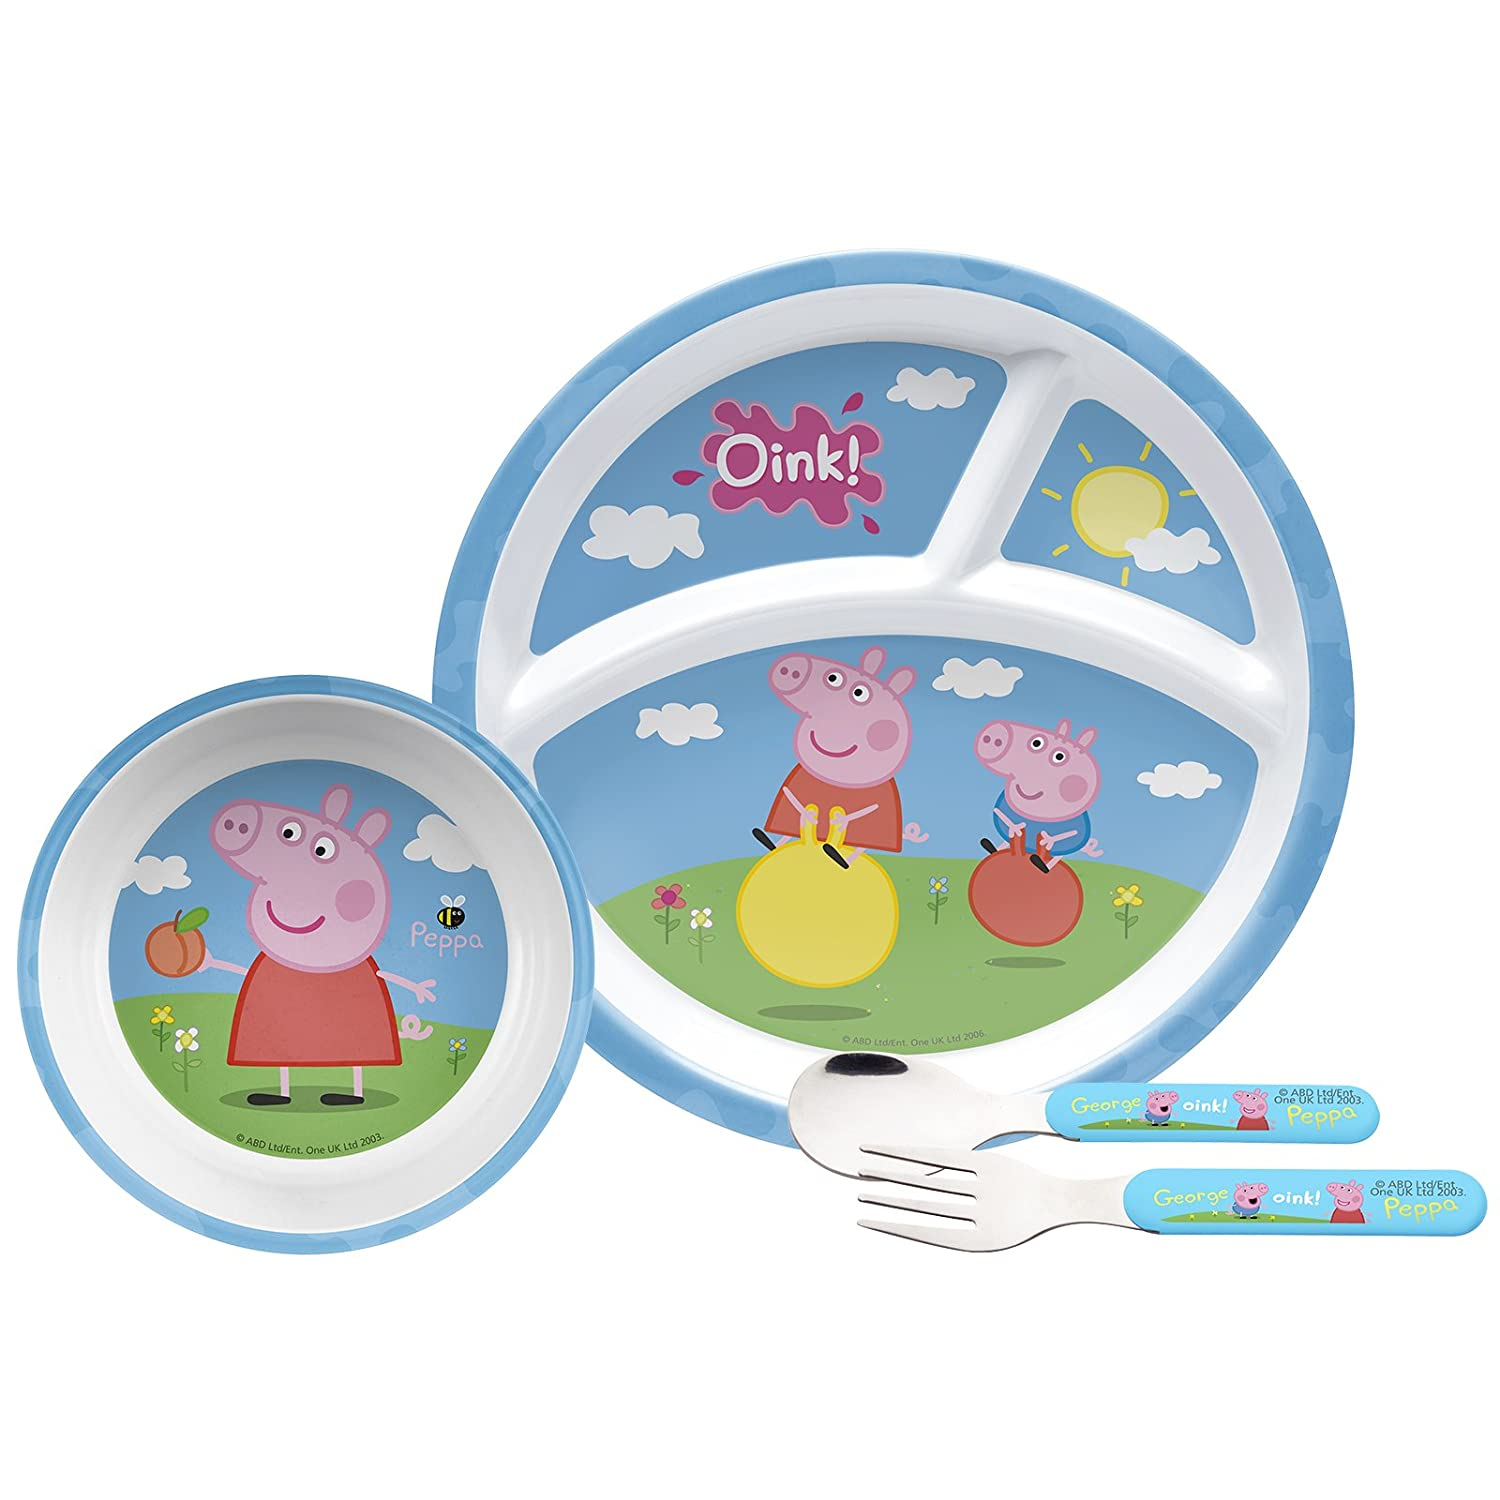 Amazon.com | Peppa Pig Mealtime Set with Plate, Bowl, Fork & Spoon ...